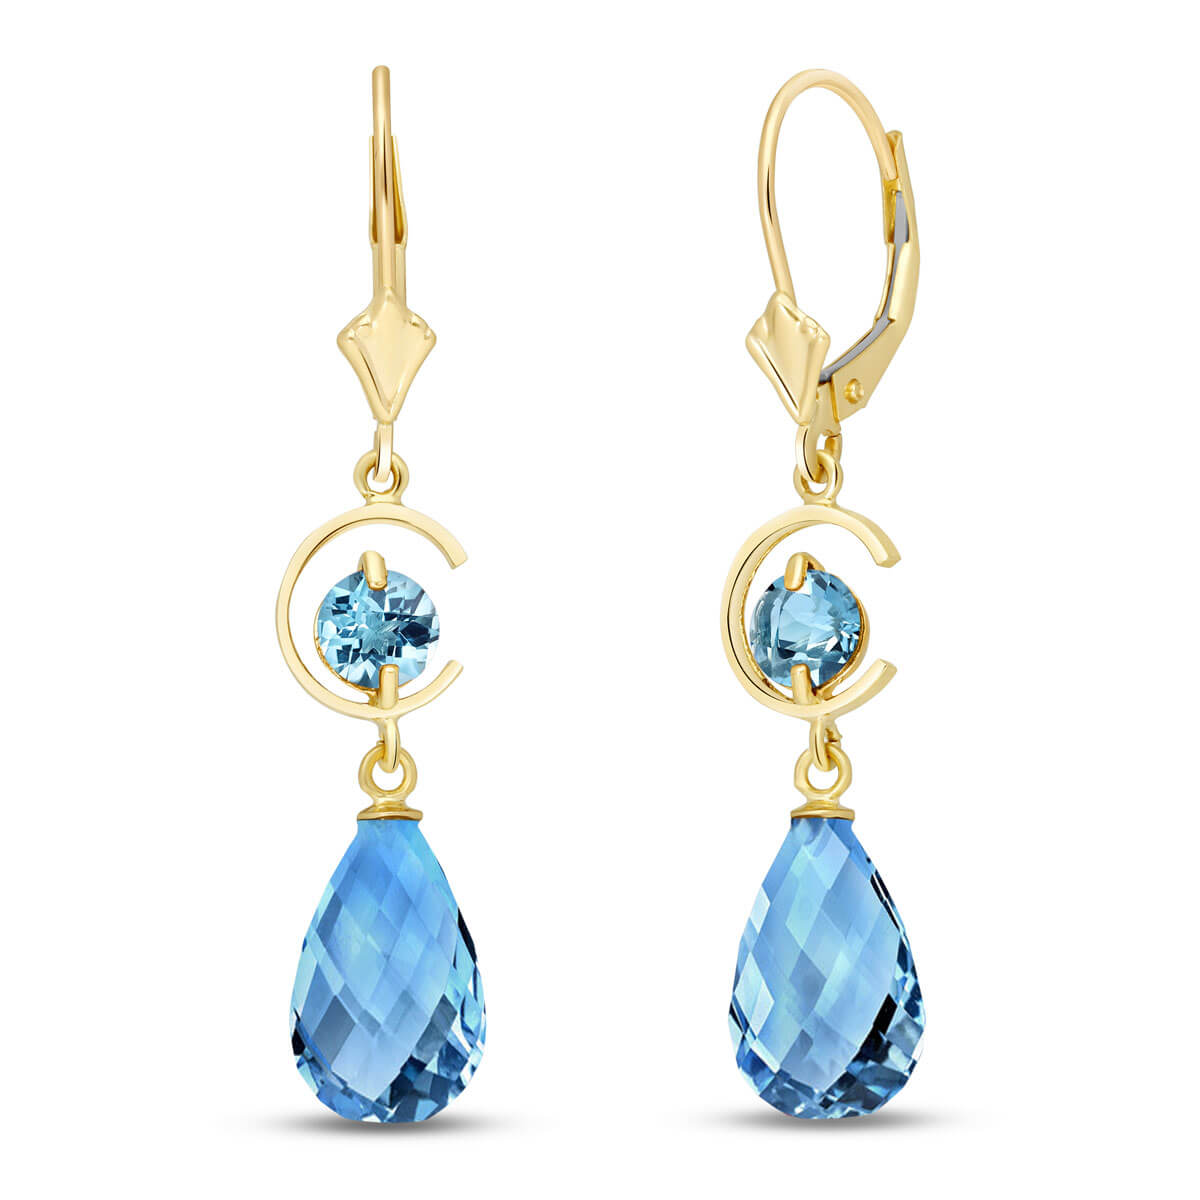 Blue Topaz Drop Earrings 11 ctw in 9ct Gold